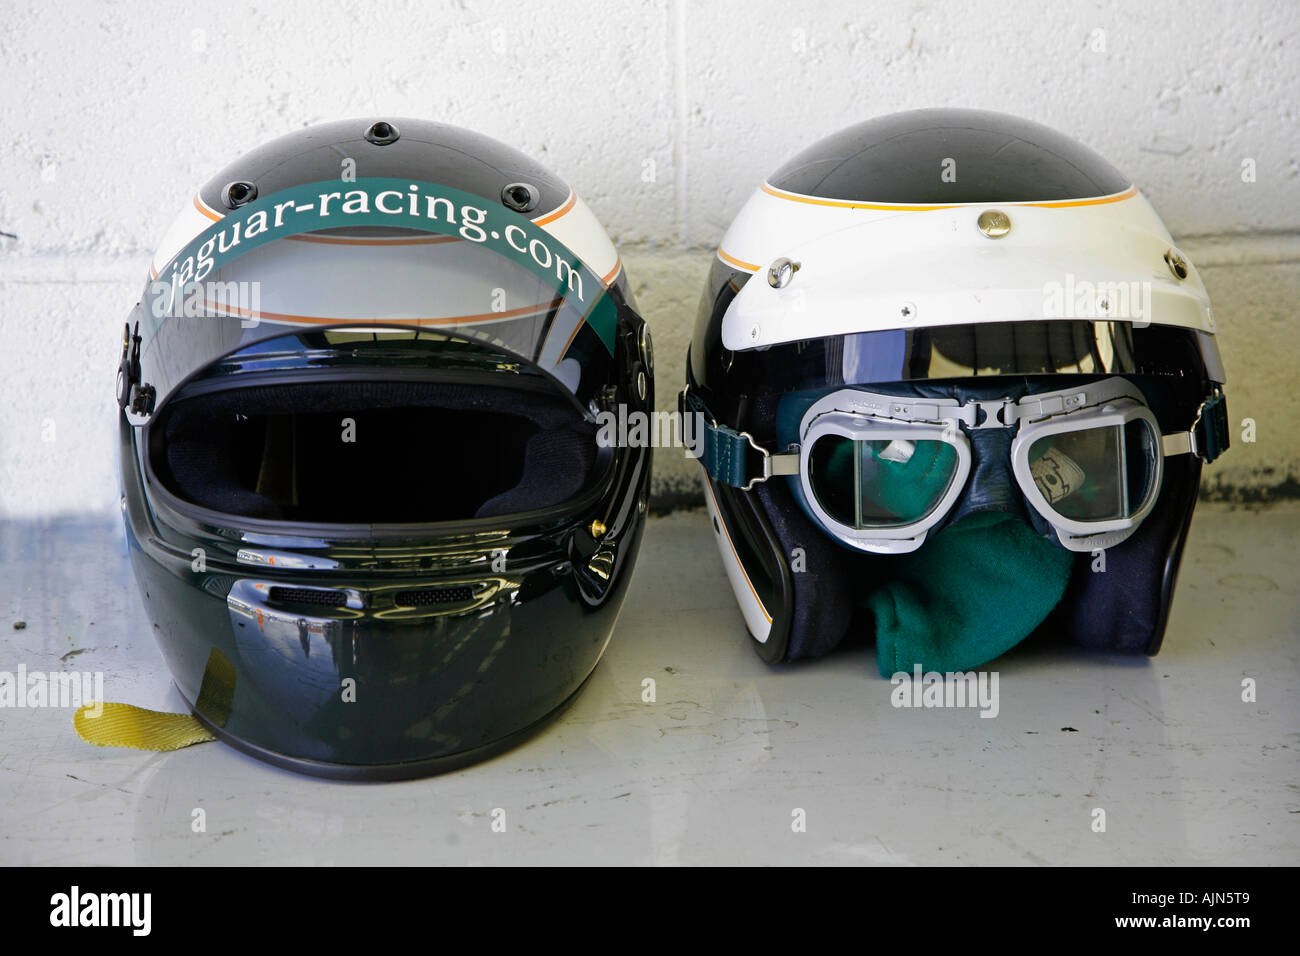 Two Racing Helmets And Goggles On The Pit Garage Floor At A Vintage Motor Race Circuit Meeting 2006